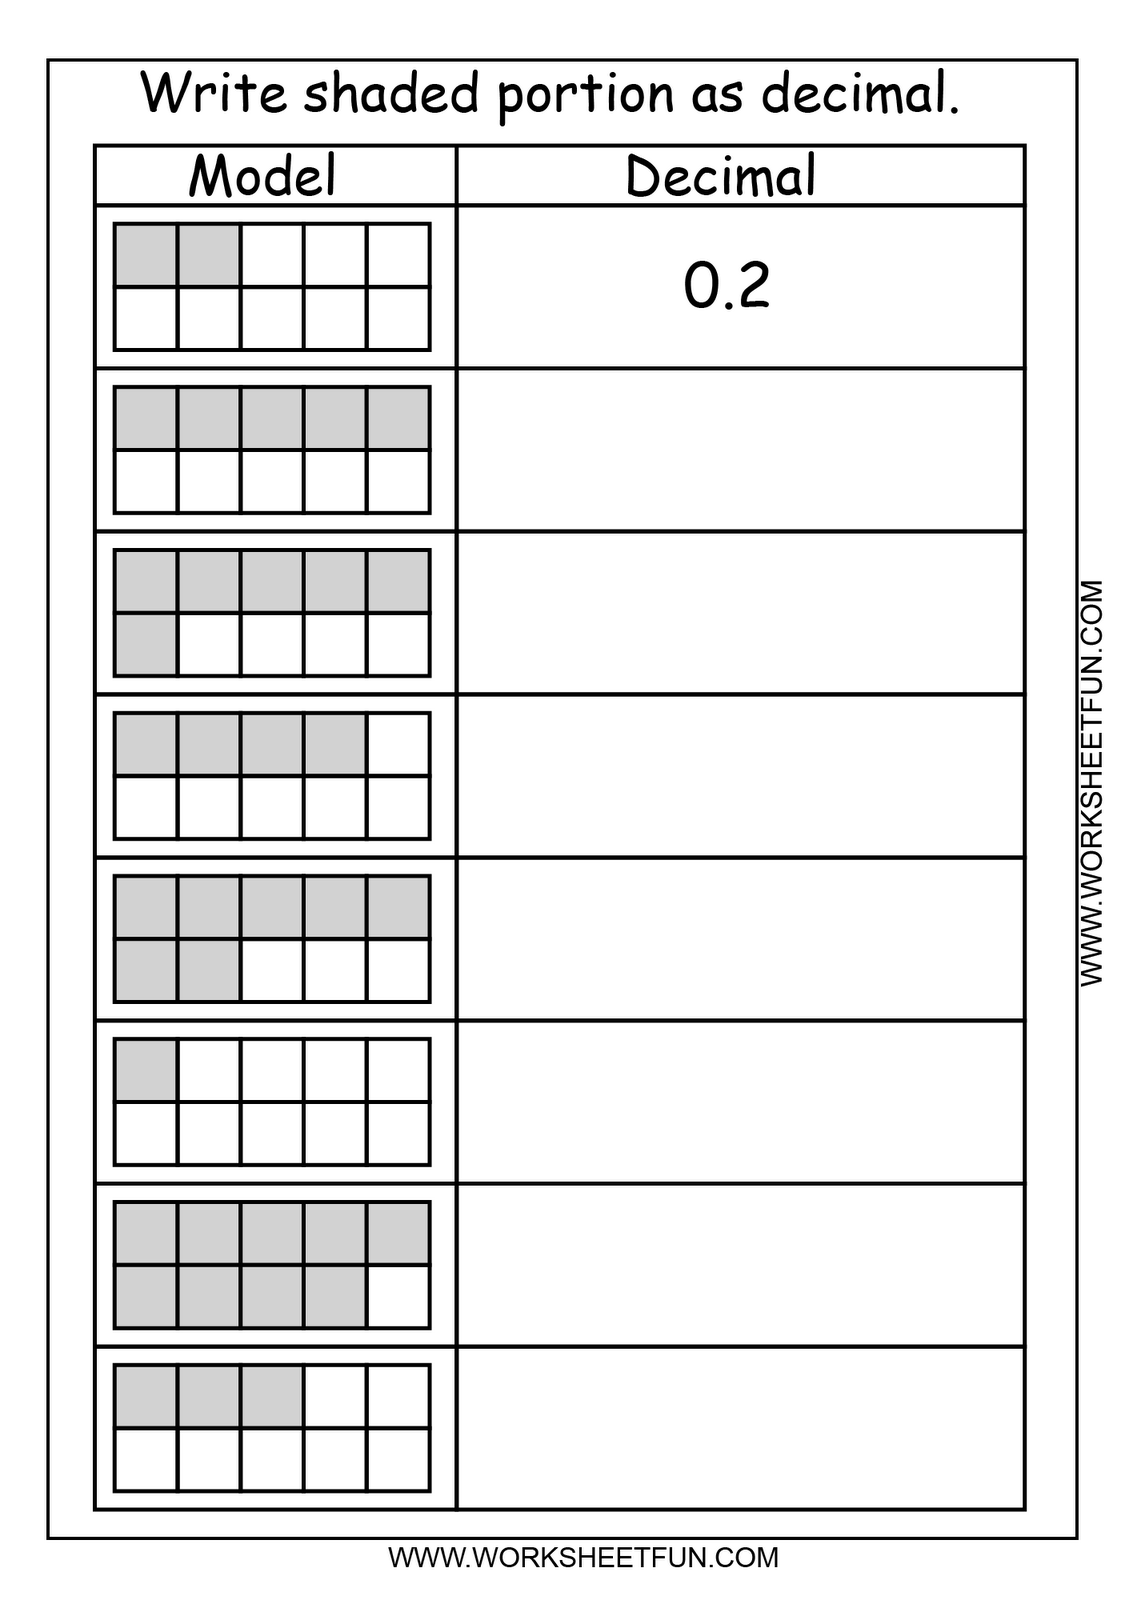 hight resolution of Worksheetfun - FREE PRINTABLE WORKSHEETS   Fractions